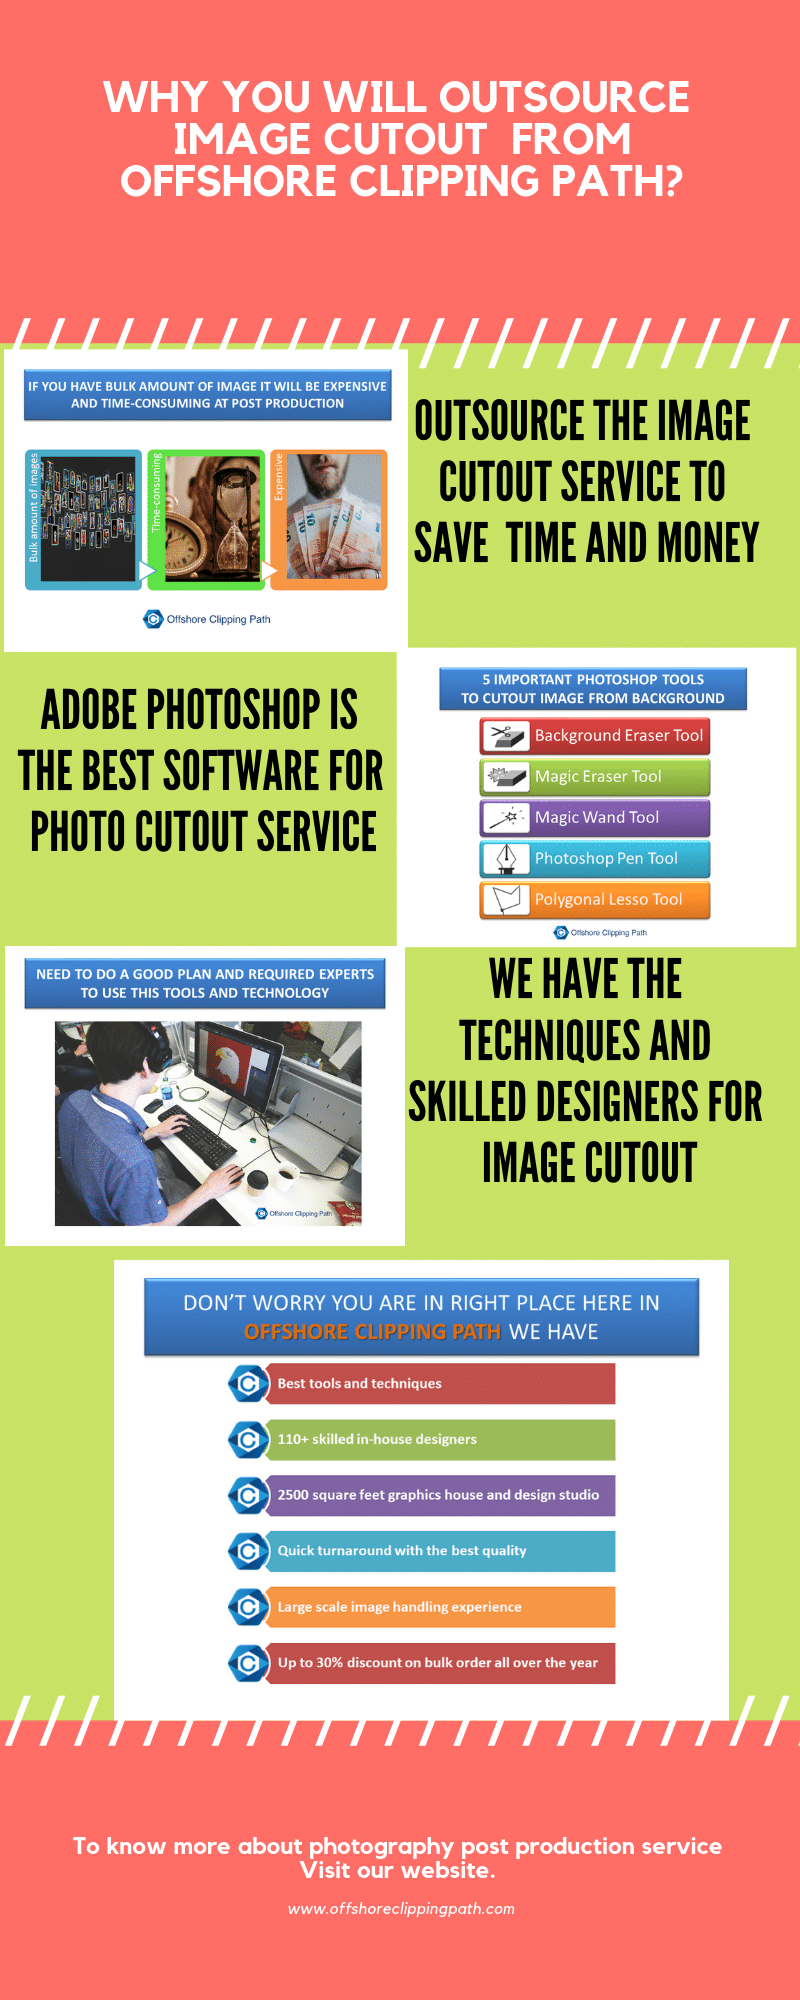 Image Cutout Services infographic